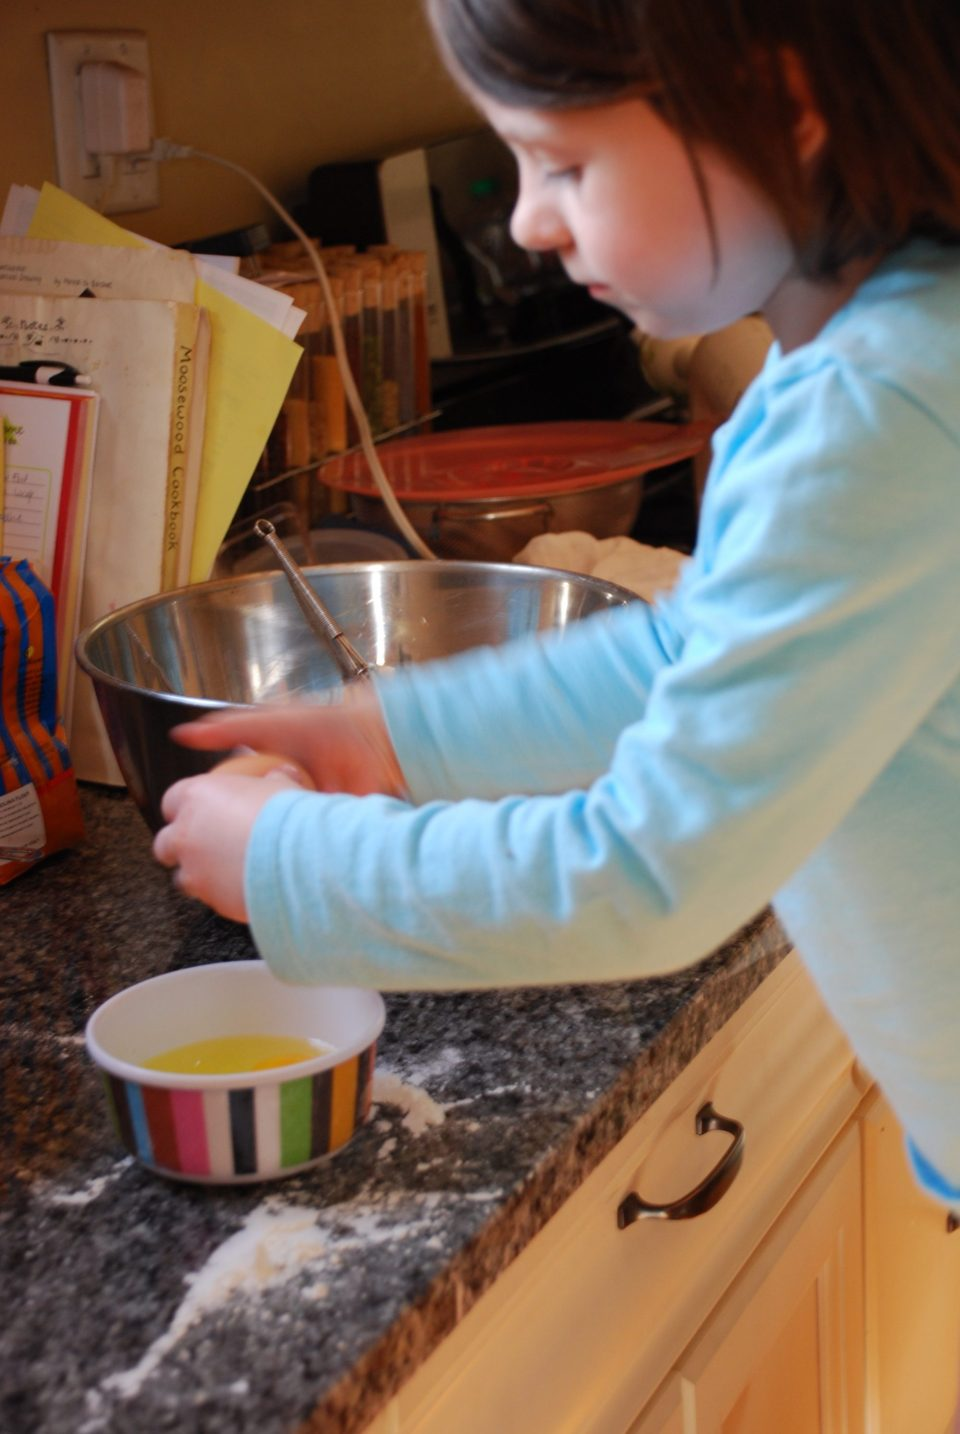 Isabelle in the kitchen